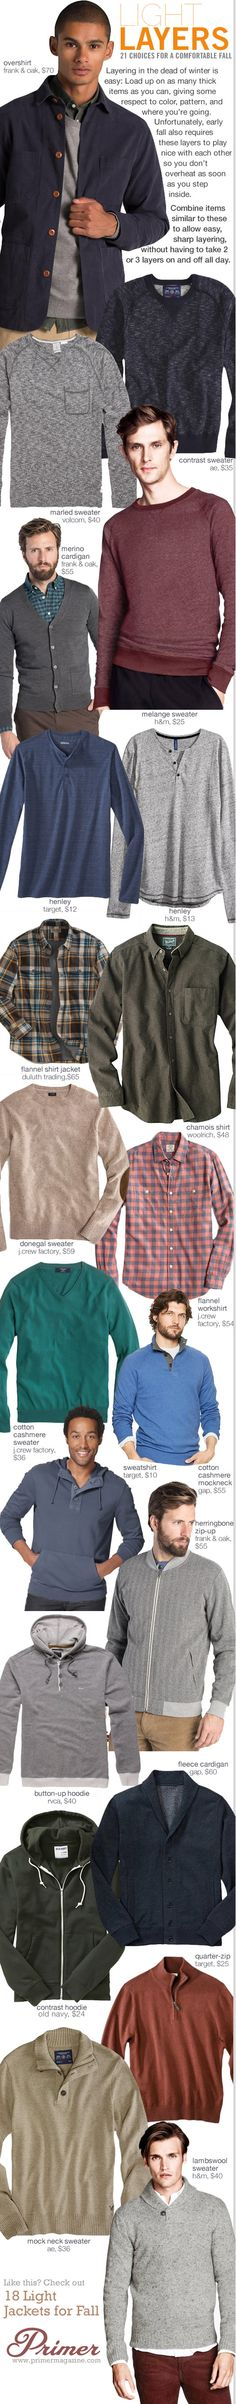 Light Layers: 21 Choices for a Comfortable Fall - Primer